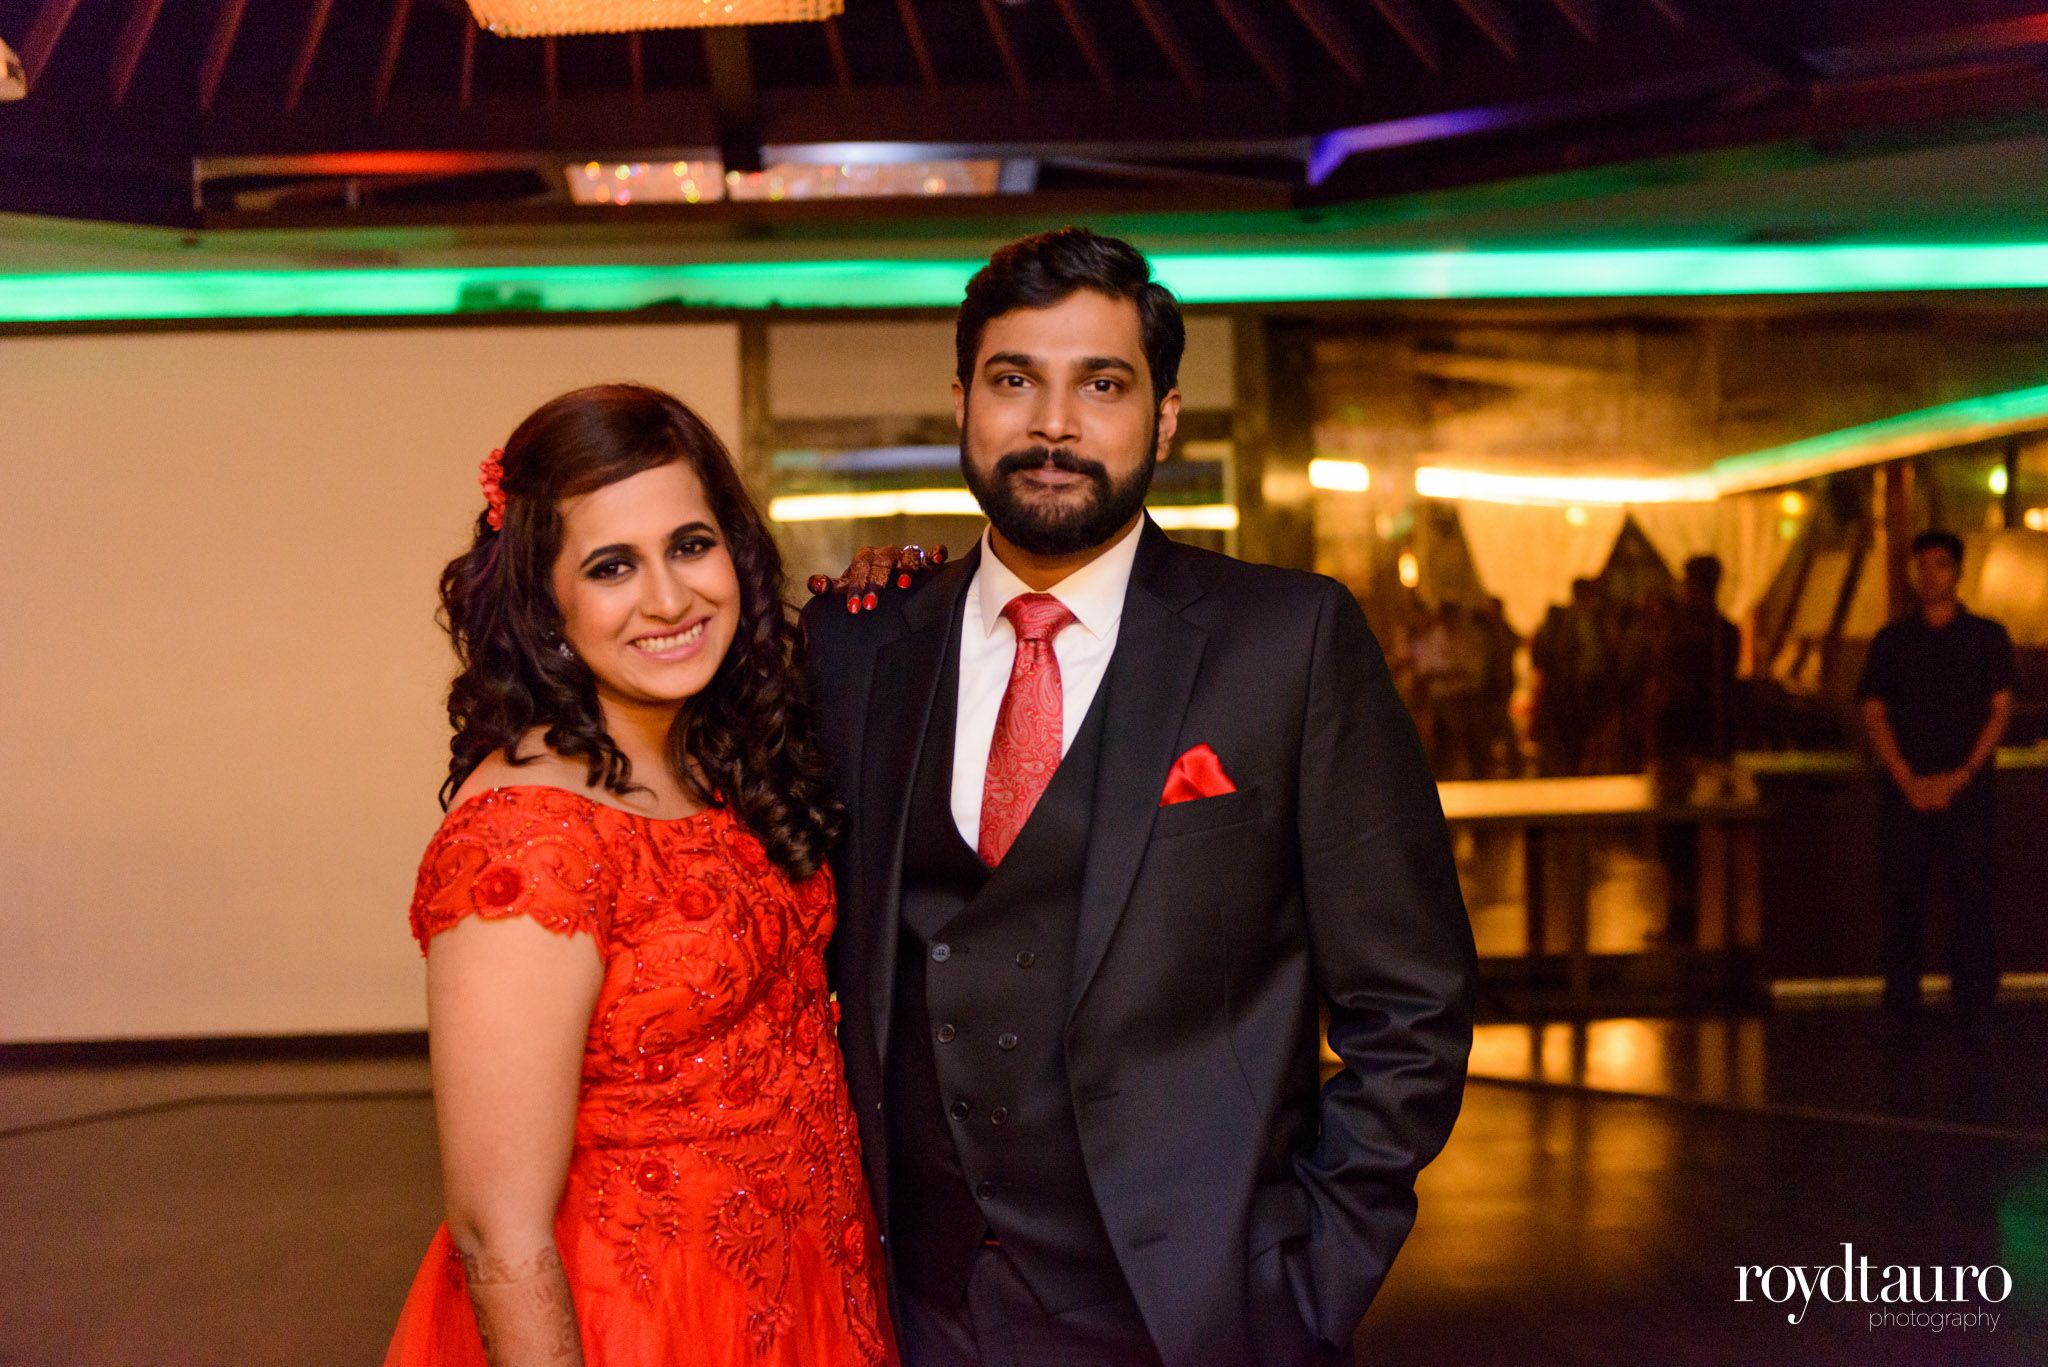 nikhil-madhura-cocktail-party-6.jpg